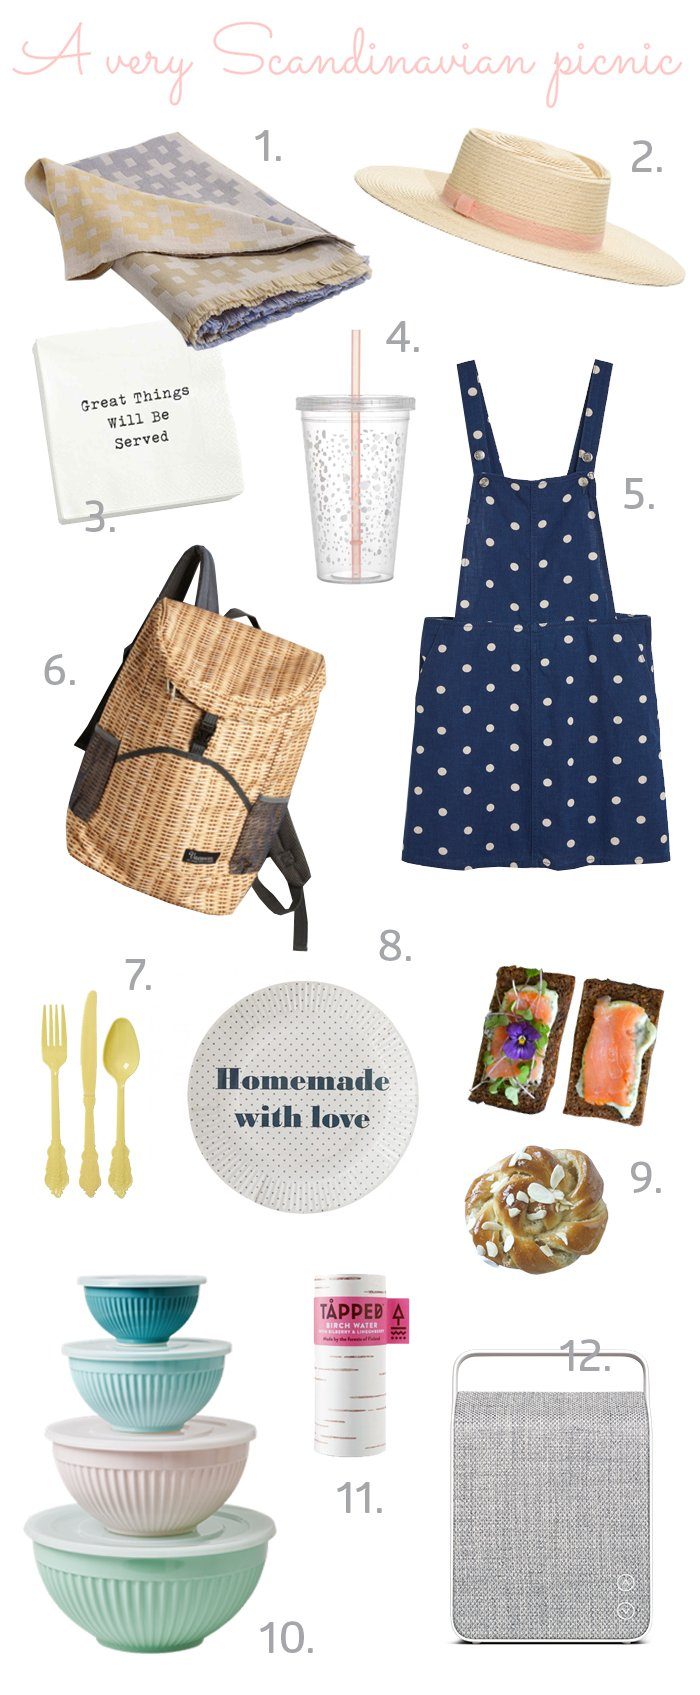 scandinavian_picnic_essentials_summer_park